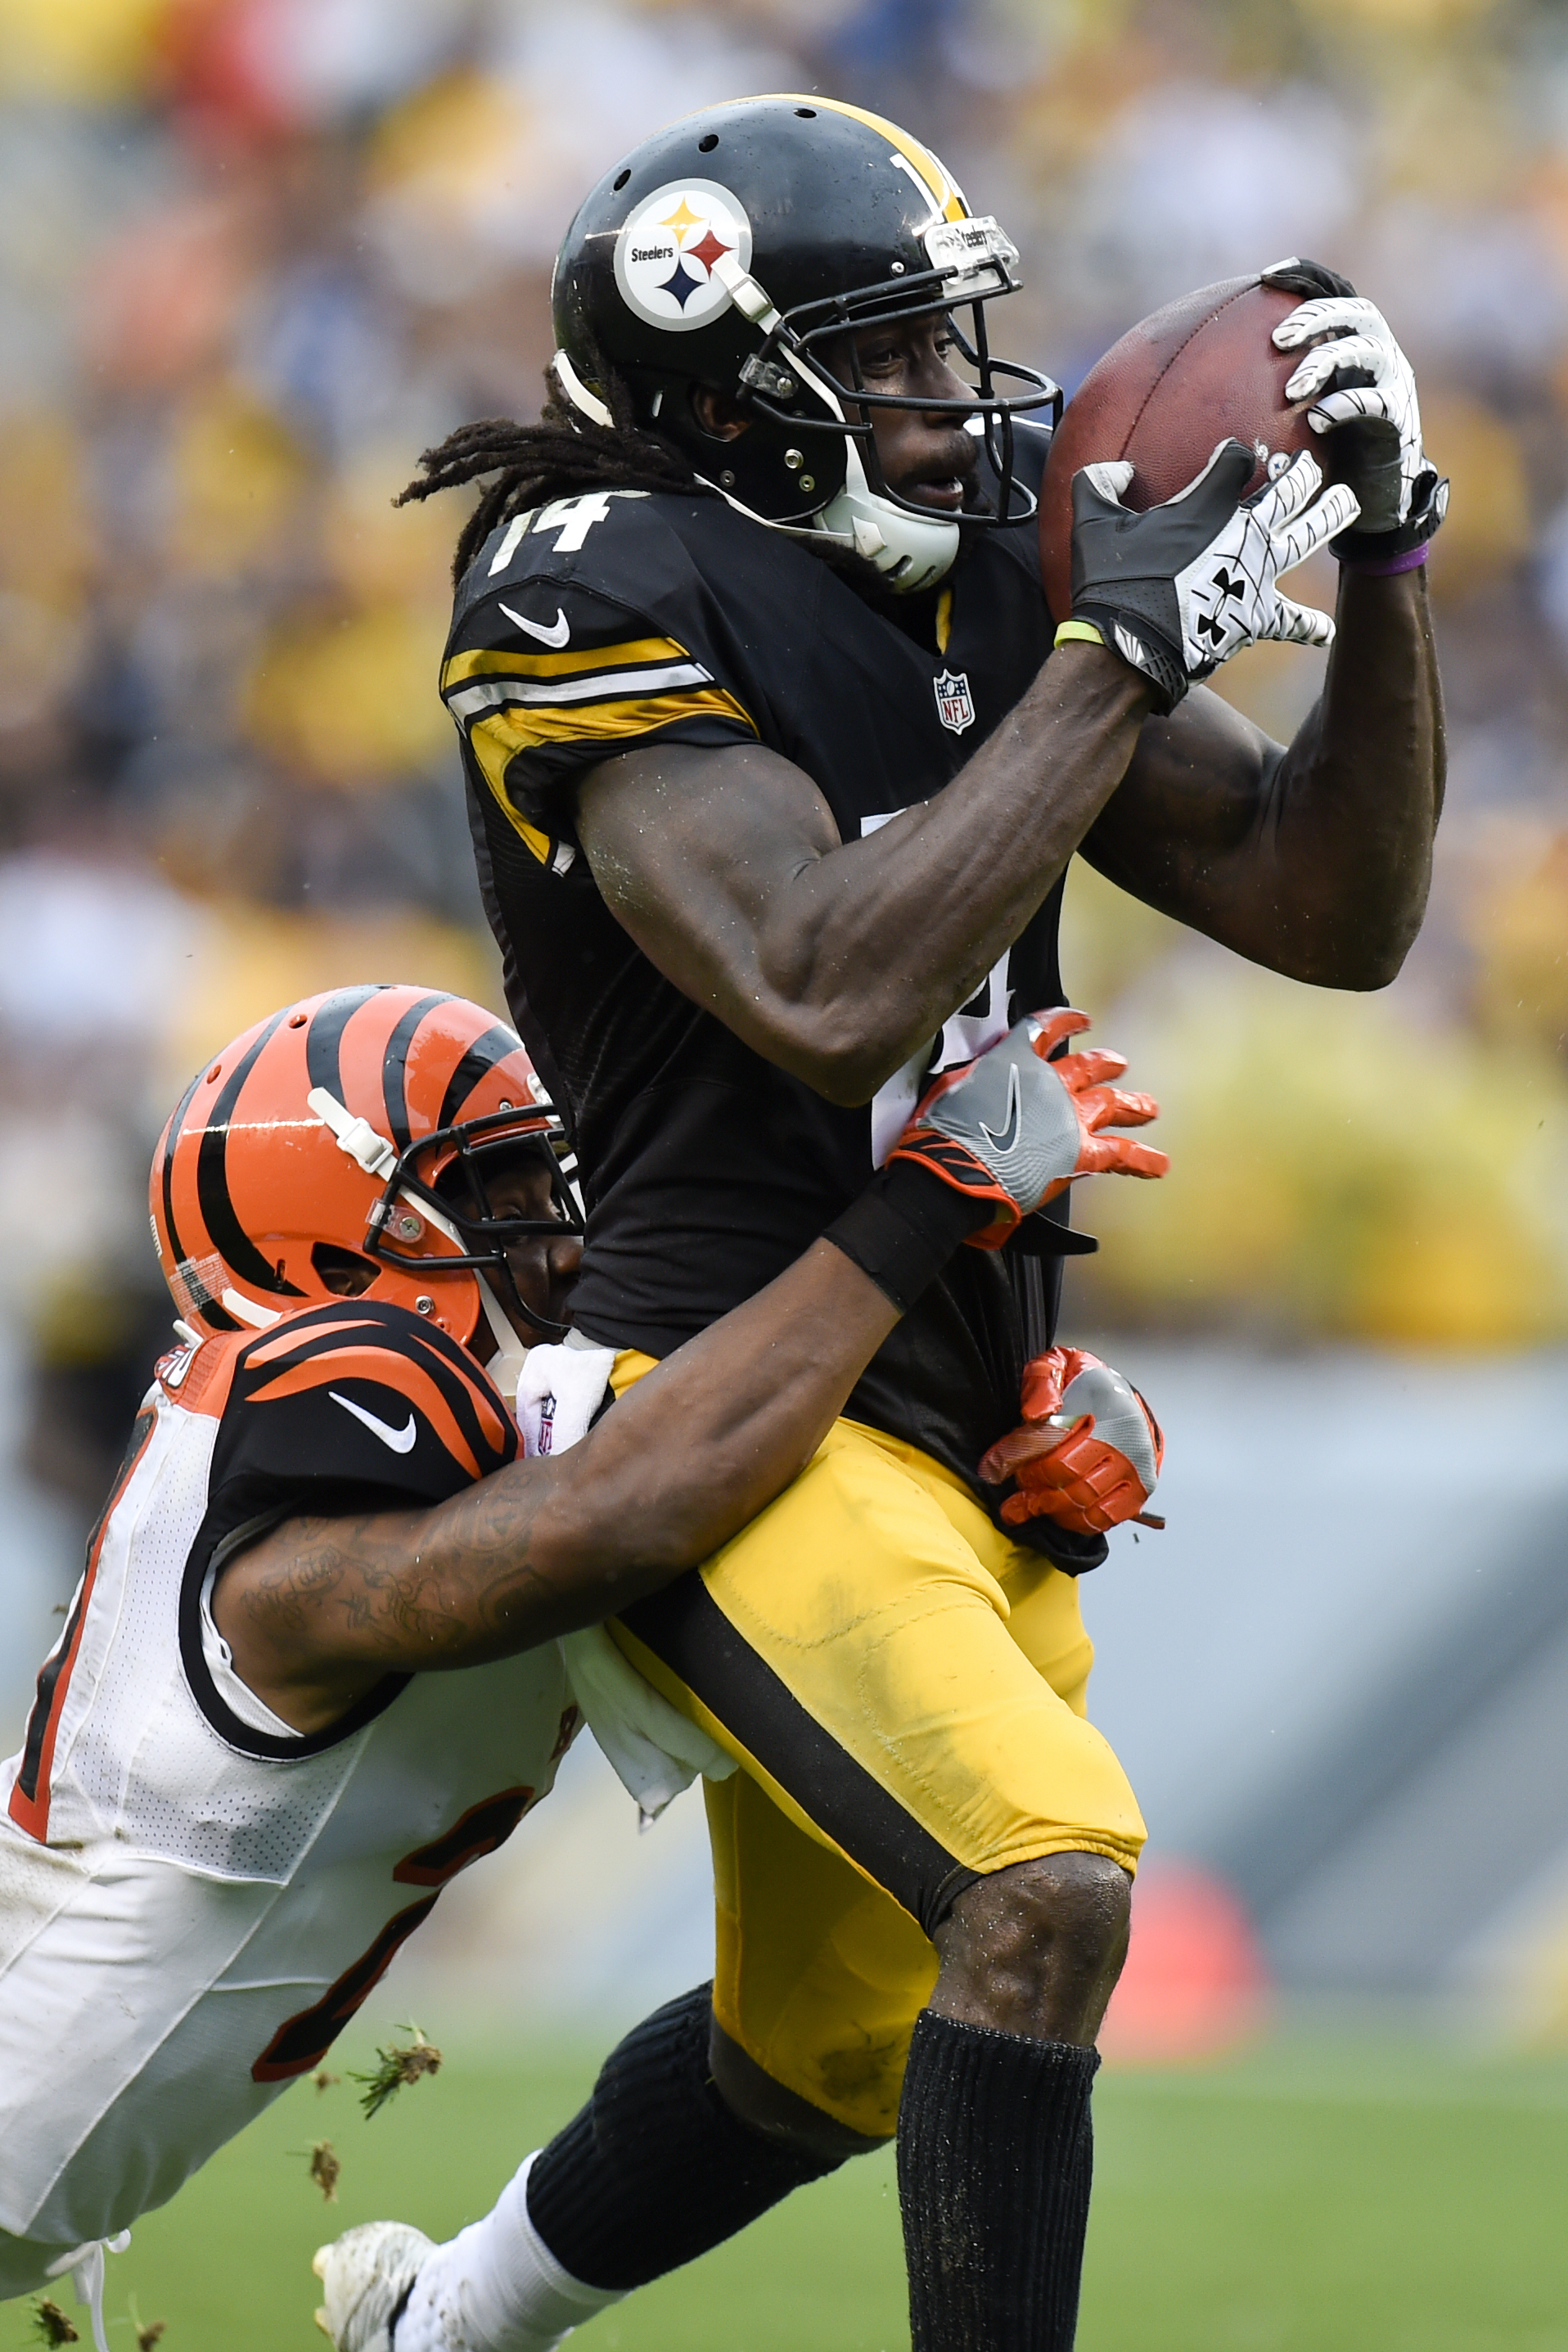 Pittsburgh Steelers wide receiver Sammie Coates (14) hauls in a pass from quarterback Ben Roethlisberger with Cincinnati Bengals cornerback Darqueze Dennard, left, defending during the second half of an NFL football game in Pittsburgh, Sunday, Sept. 18, 2